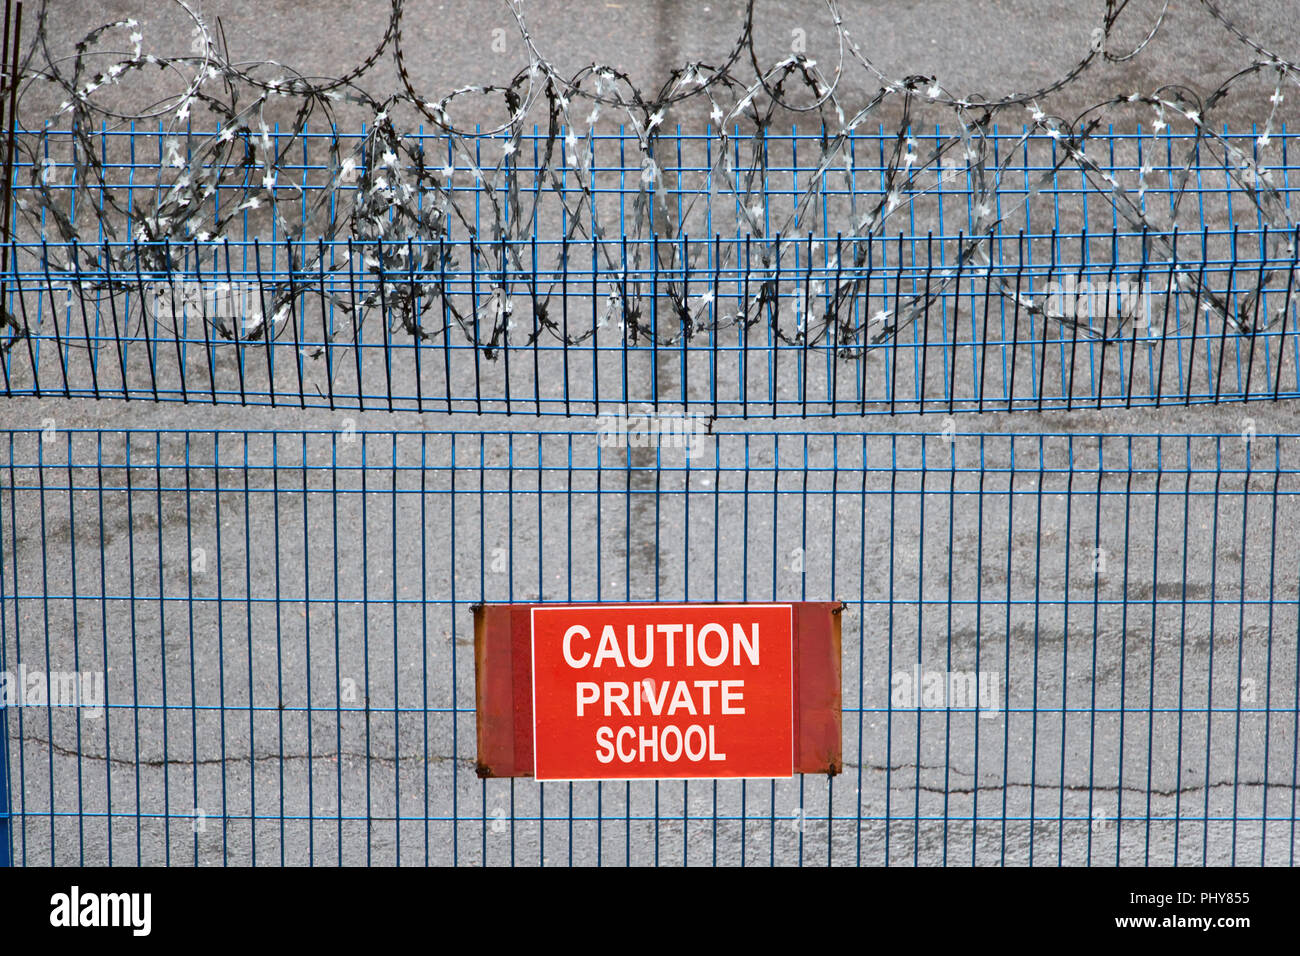 Iron fence with barbed wire. Metallic fence with red warning sign ...